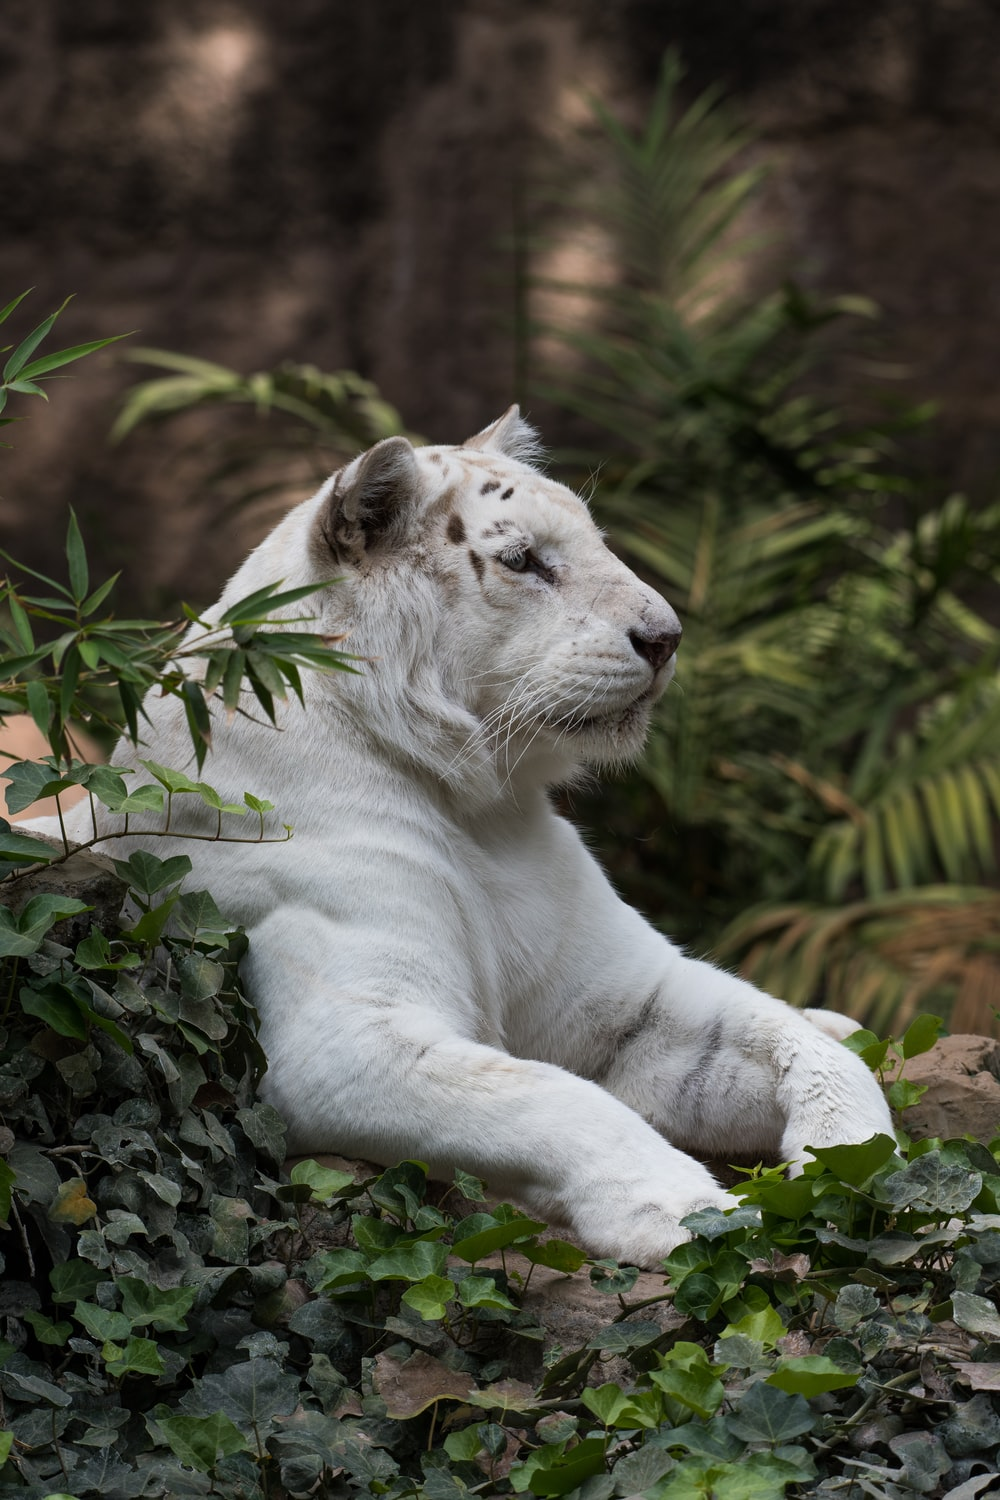 white lion sitting on green-leafed plants